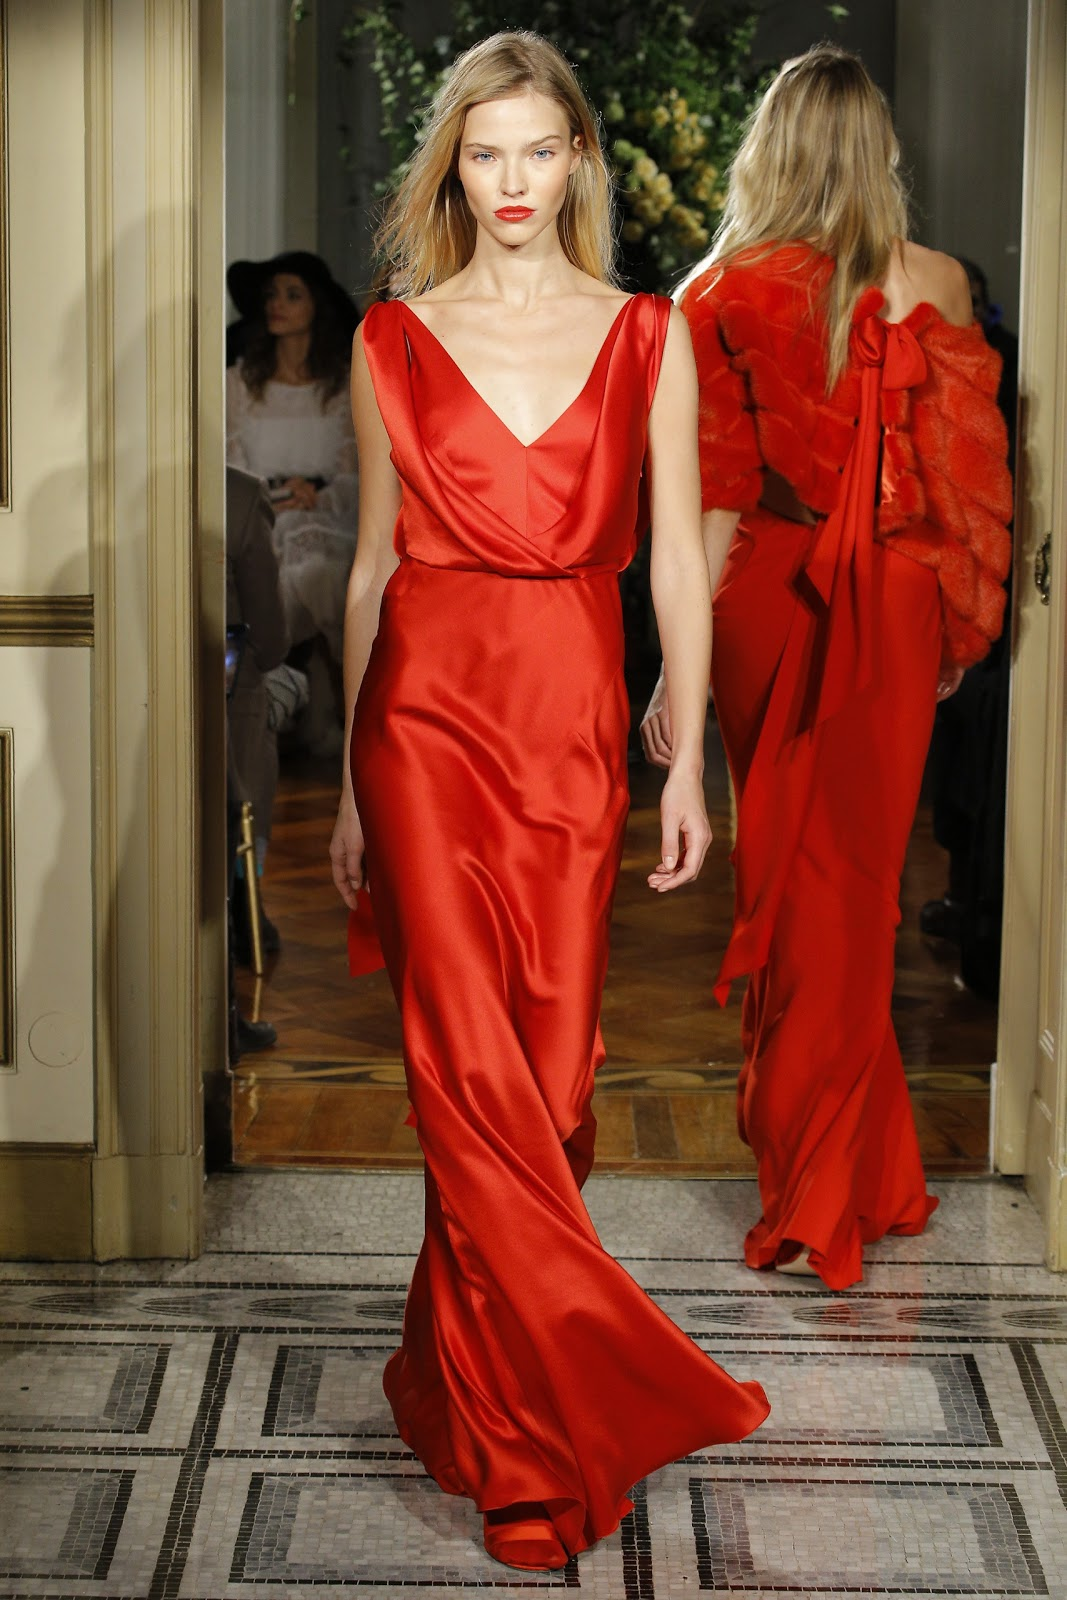 The Charming Red Evening Dresses